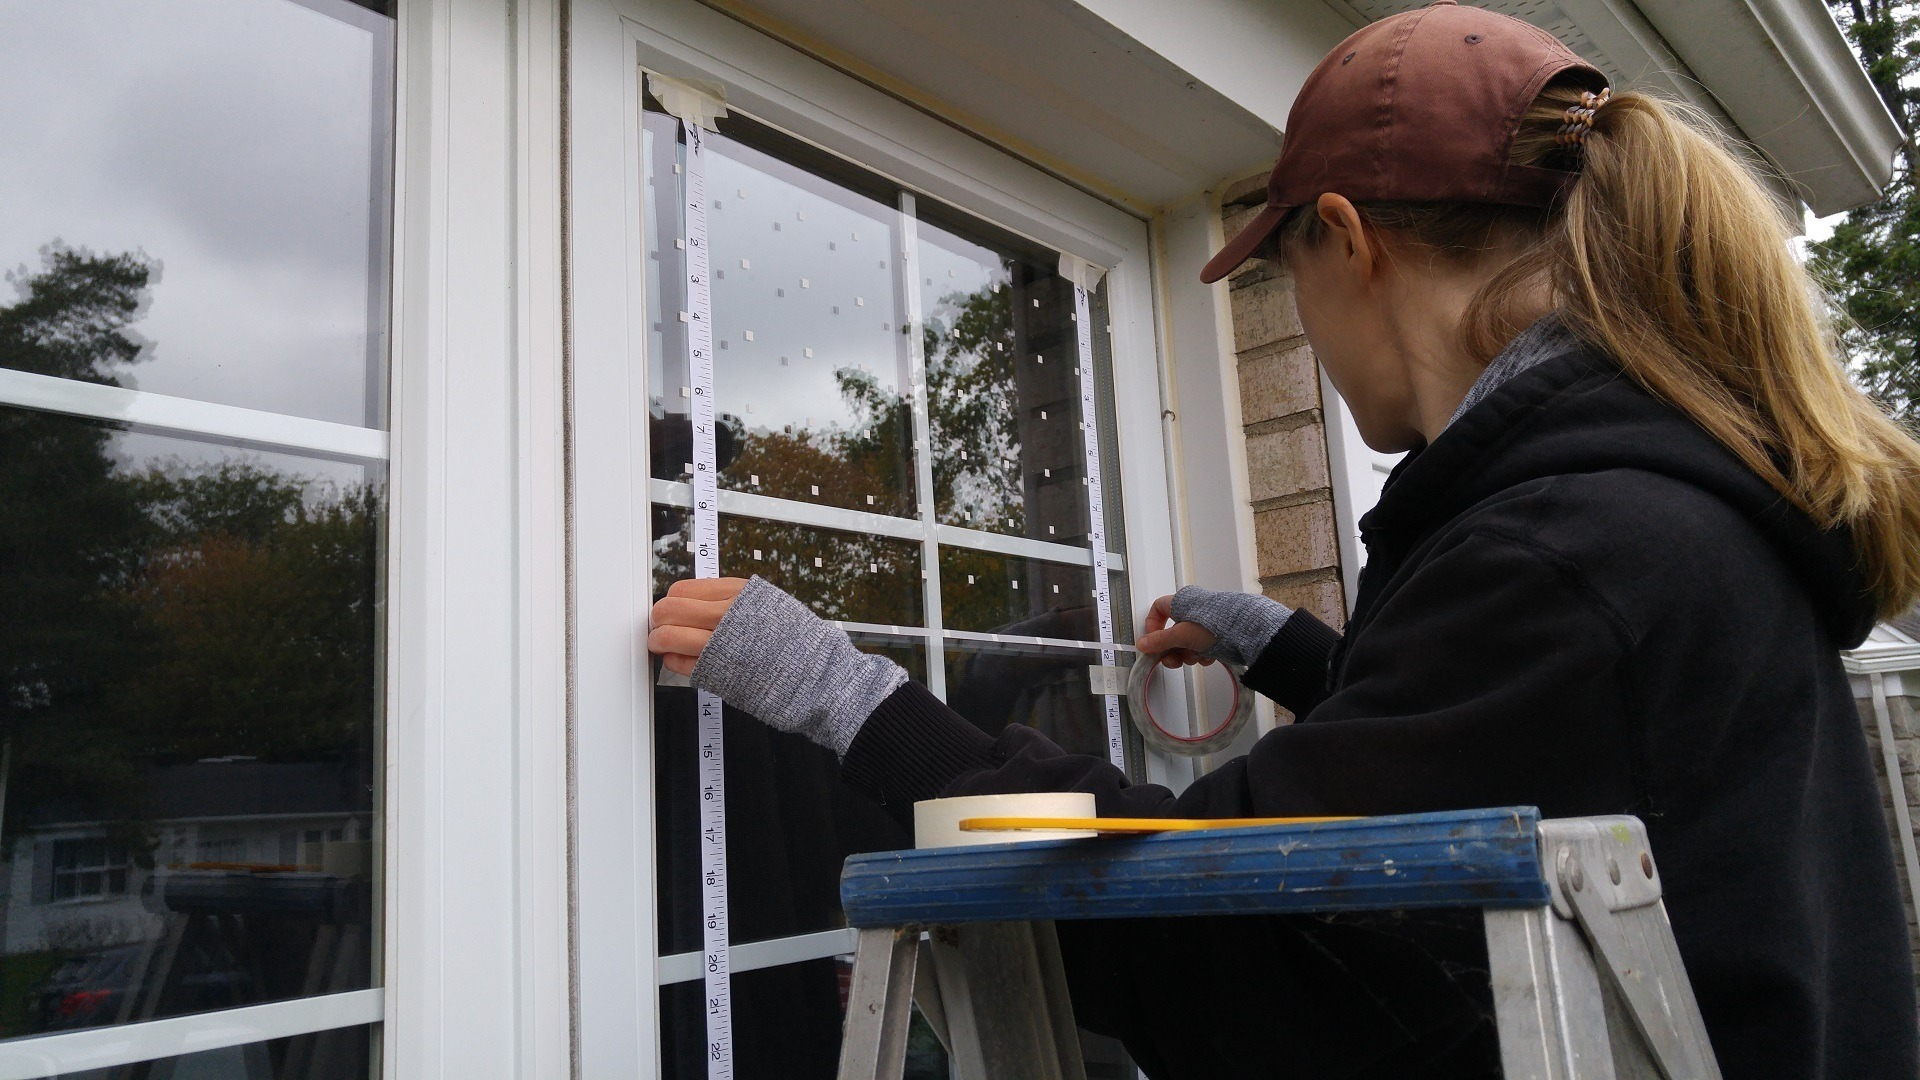 A woman installing decals on her windows for preventing bird-window collisions